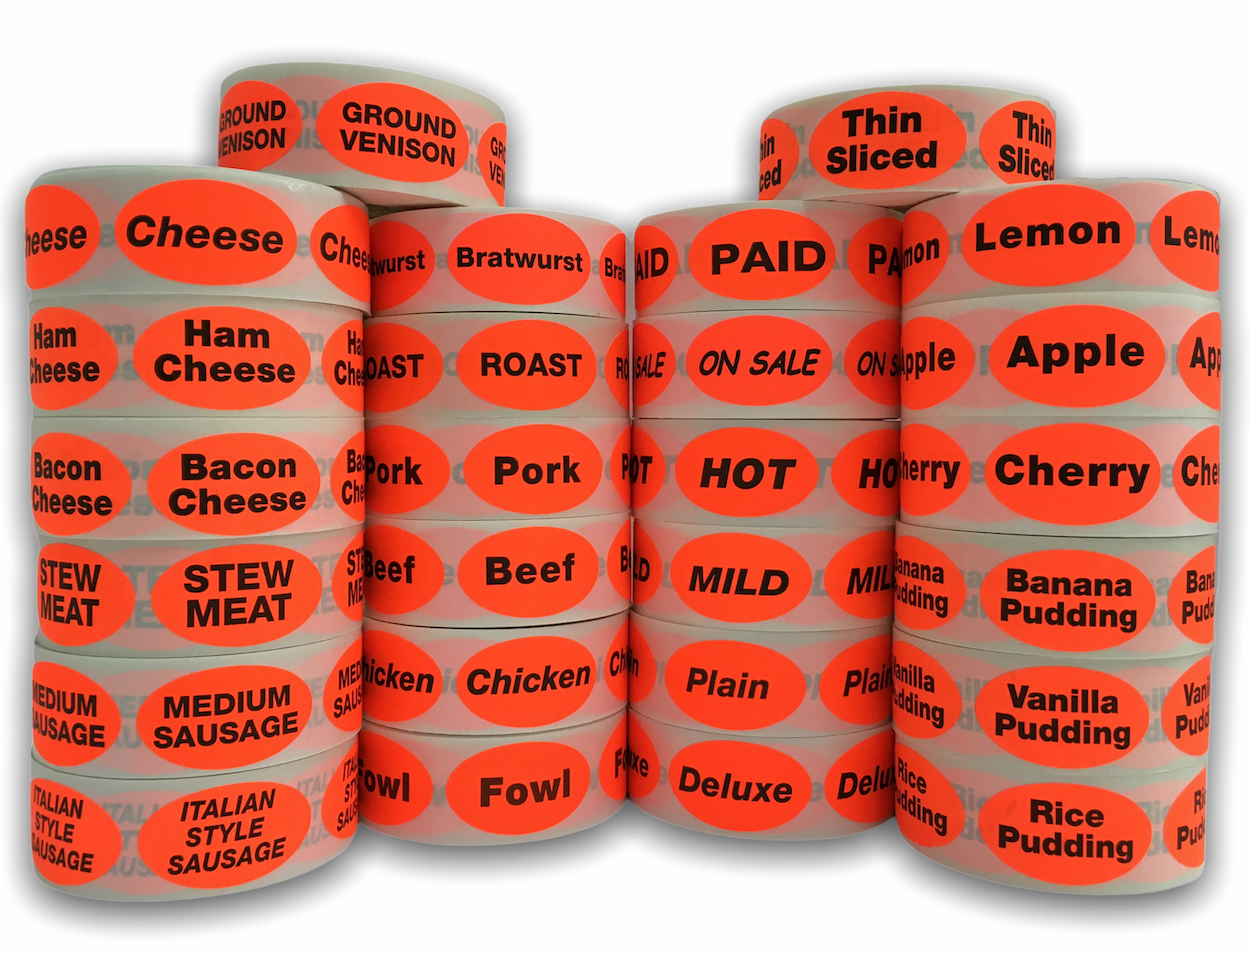 "FOOD / MEAT / PRODUCE / BAKERY Grocery Deli Supermarket Stickers - Br/Red 1-1/2"" x 1"" Oval Labels"